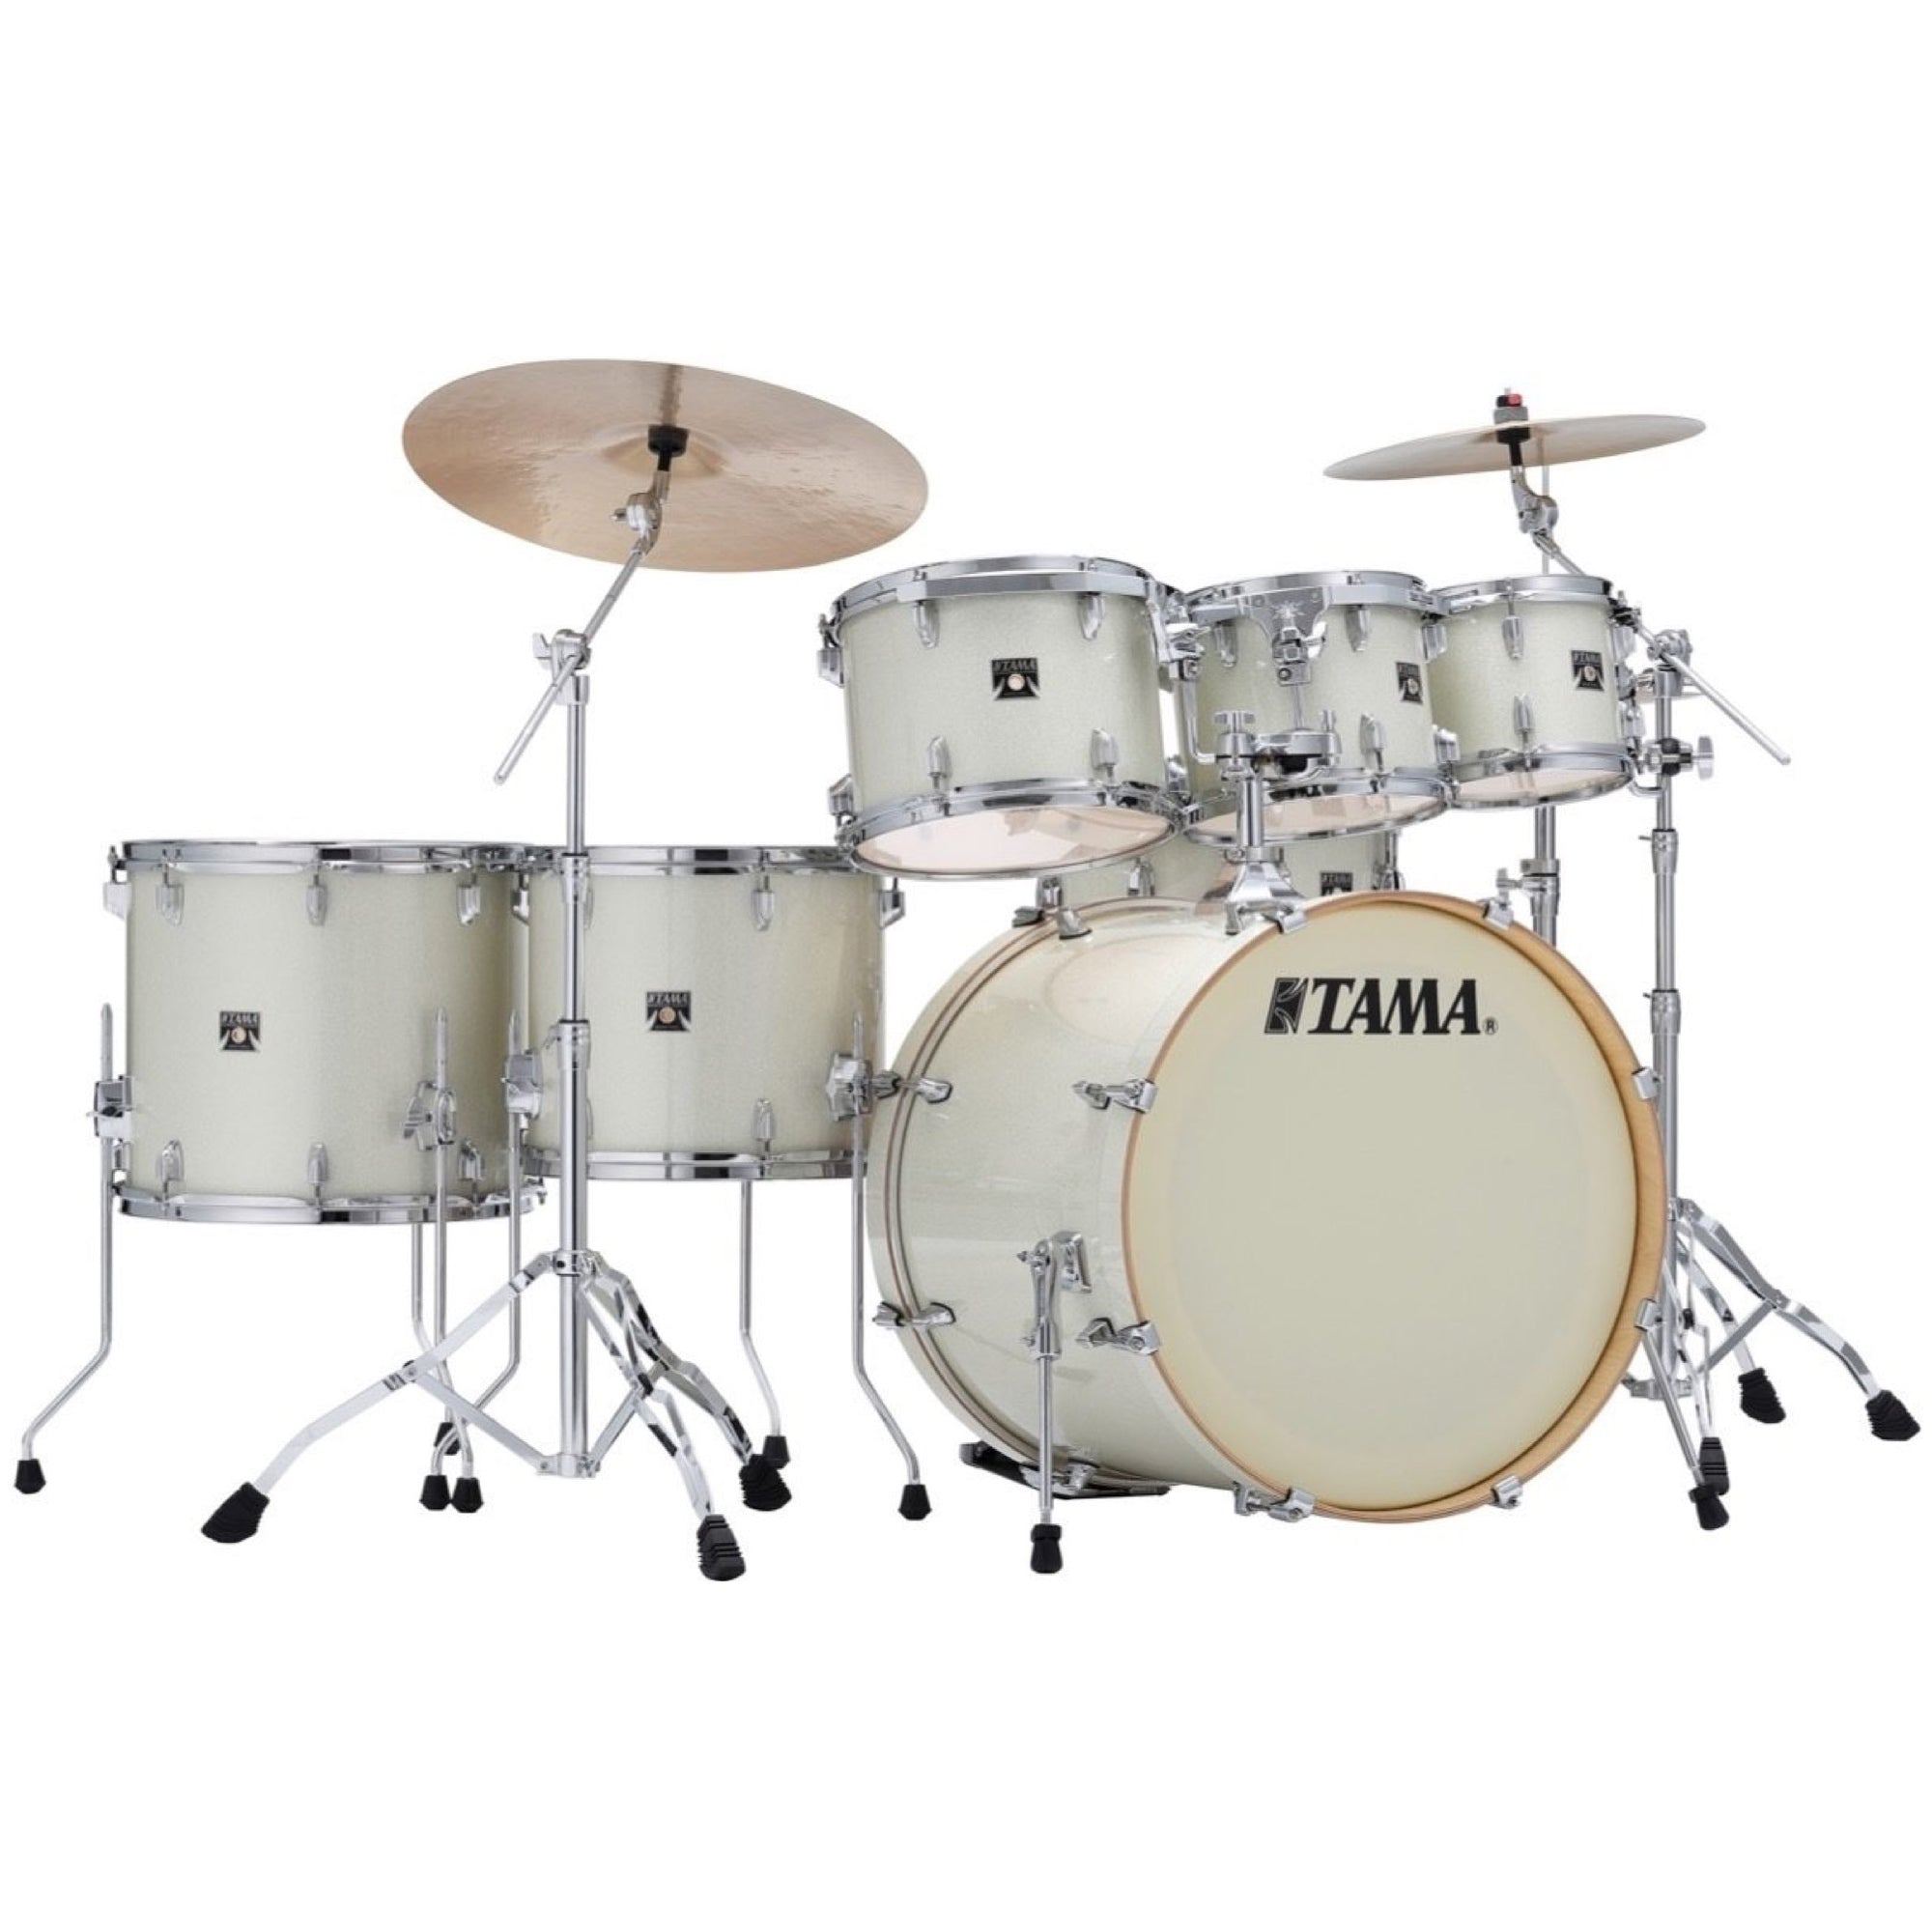 Tama CK72S Superstar Classic Drum Shell Kit, 7-Piece, Vintage White Sparkle